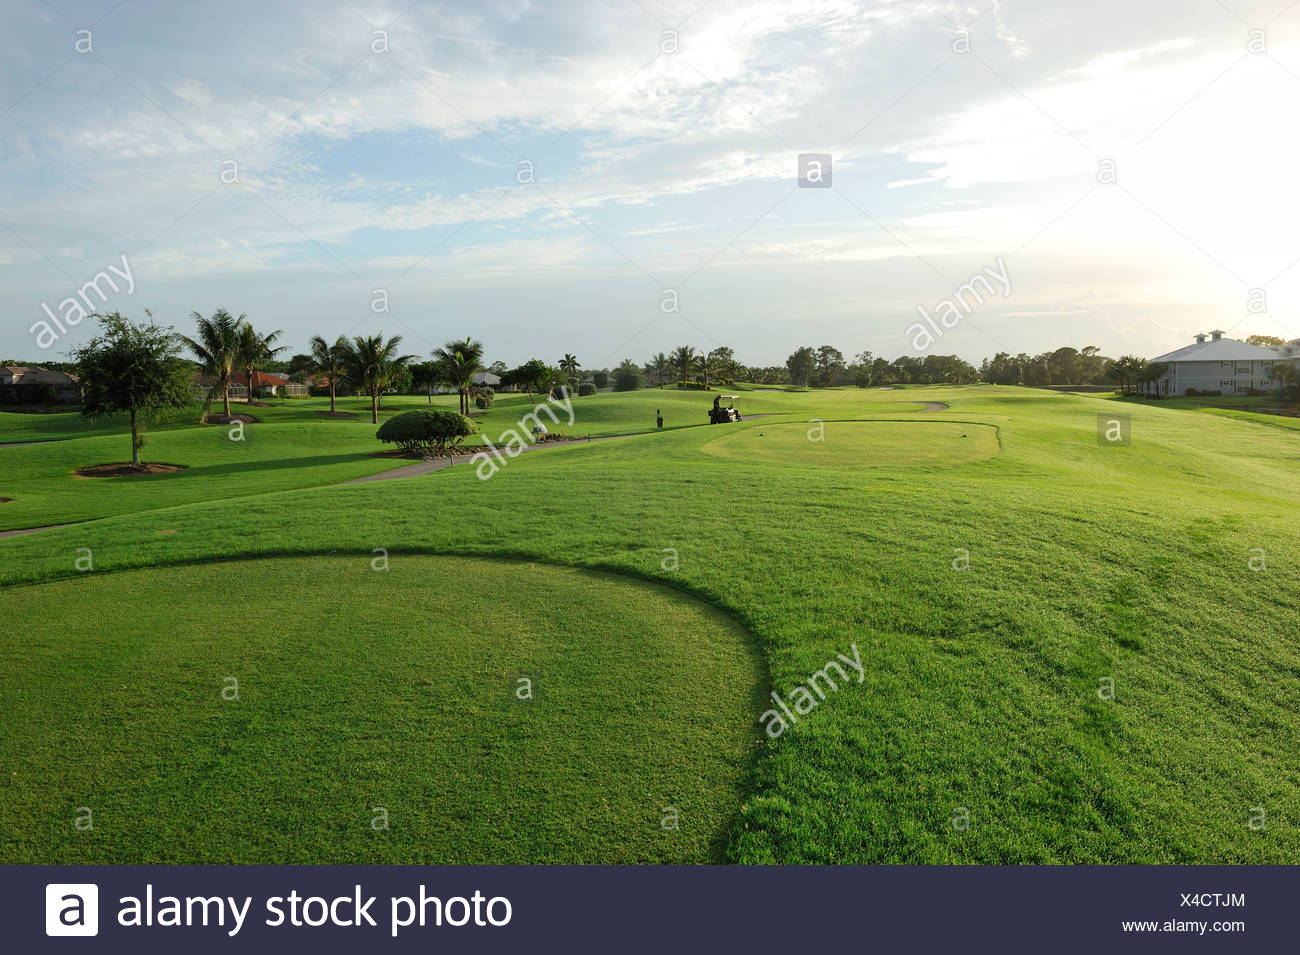 Flamingo Golf Course, golf, Lely Resort, Naples, Florida, USA, United States, America, green, grass - Stock Image